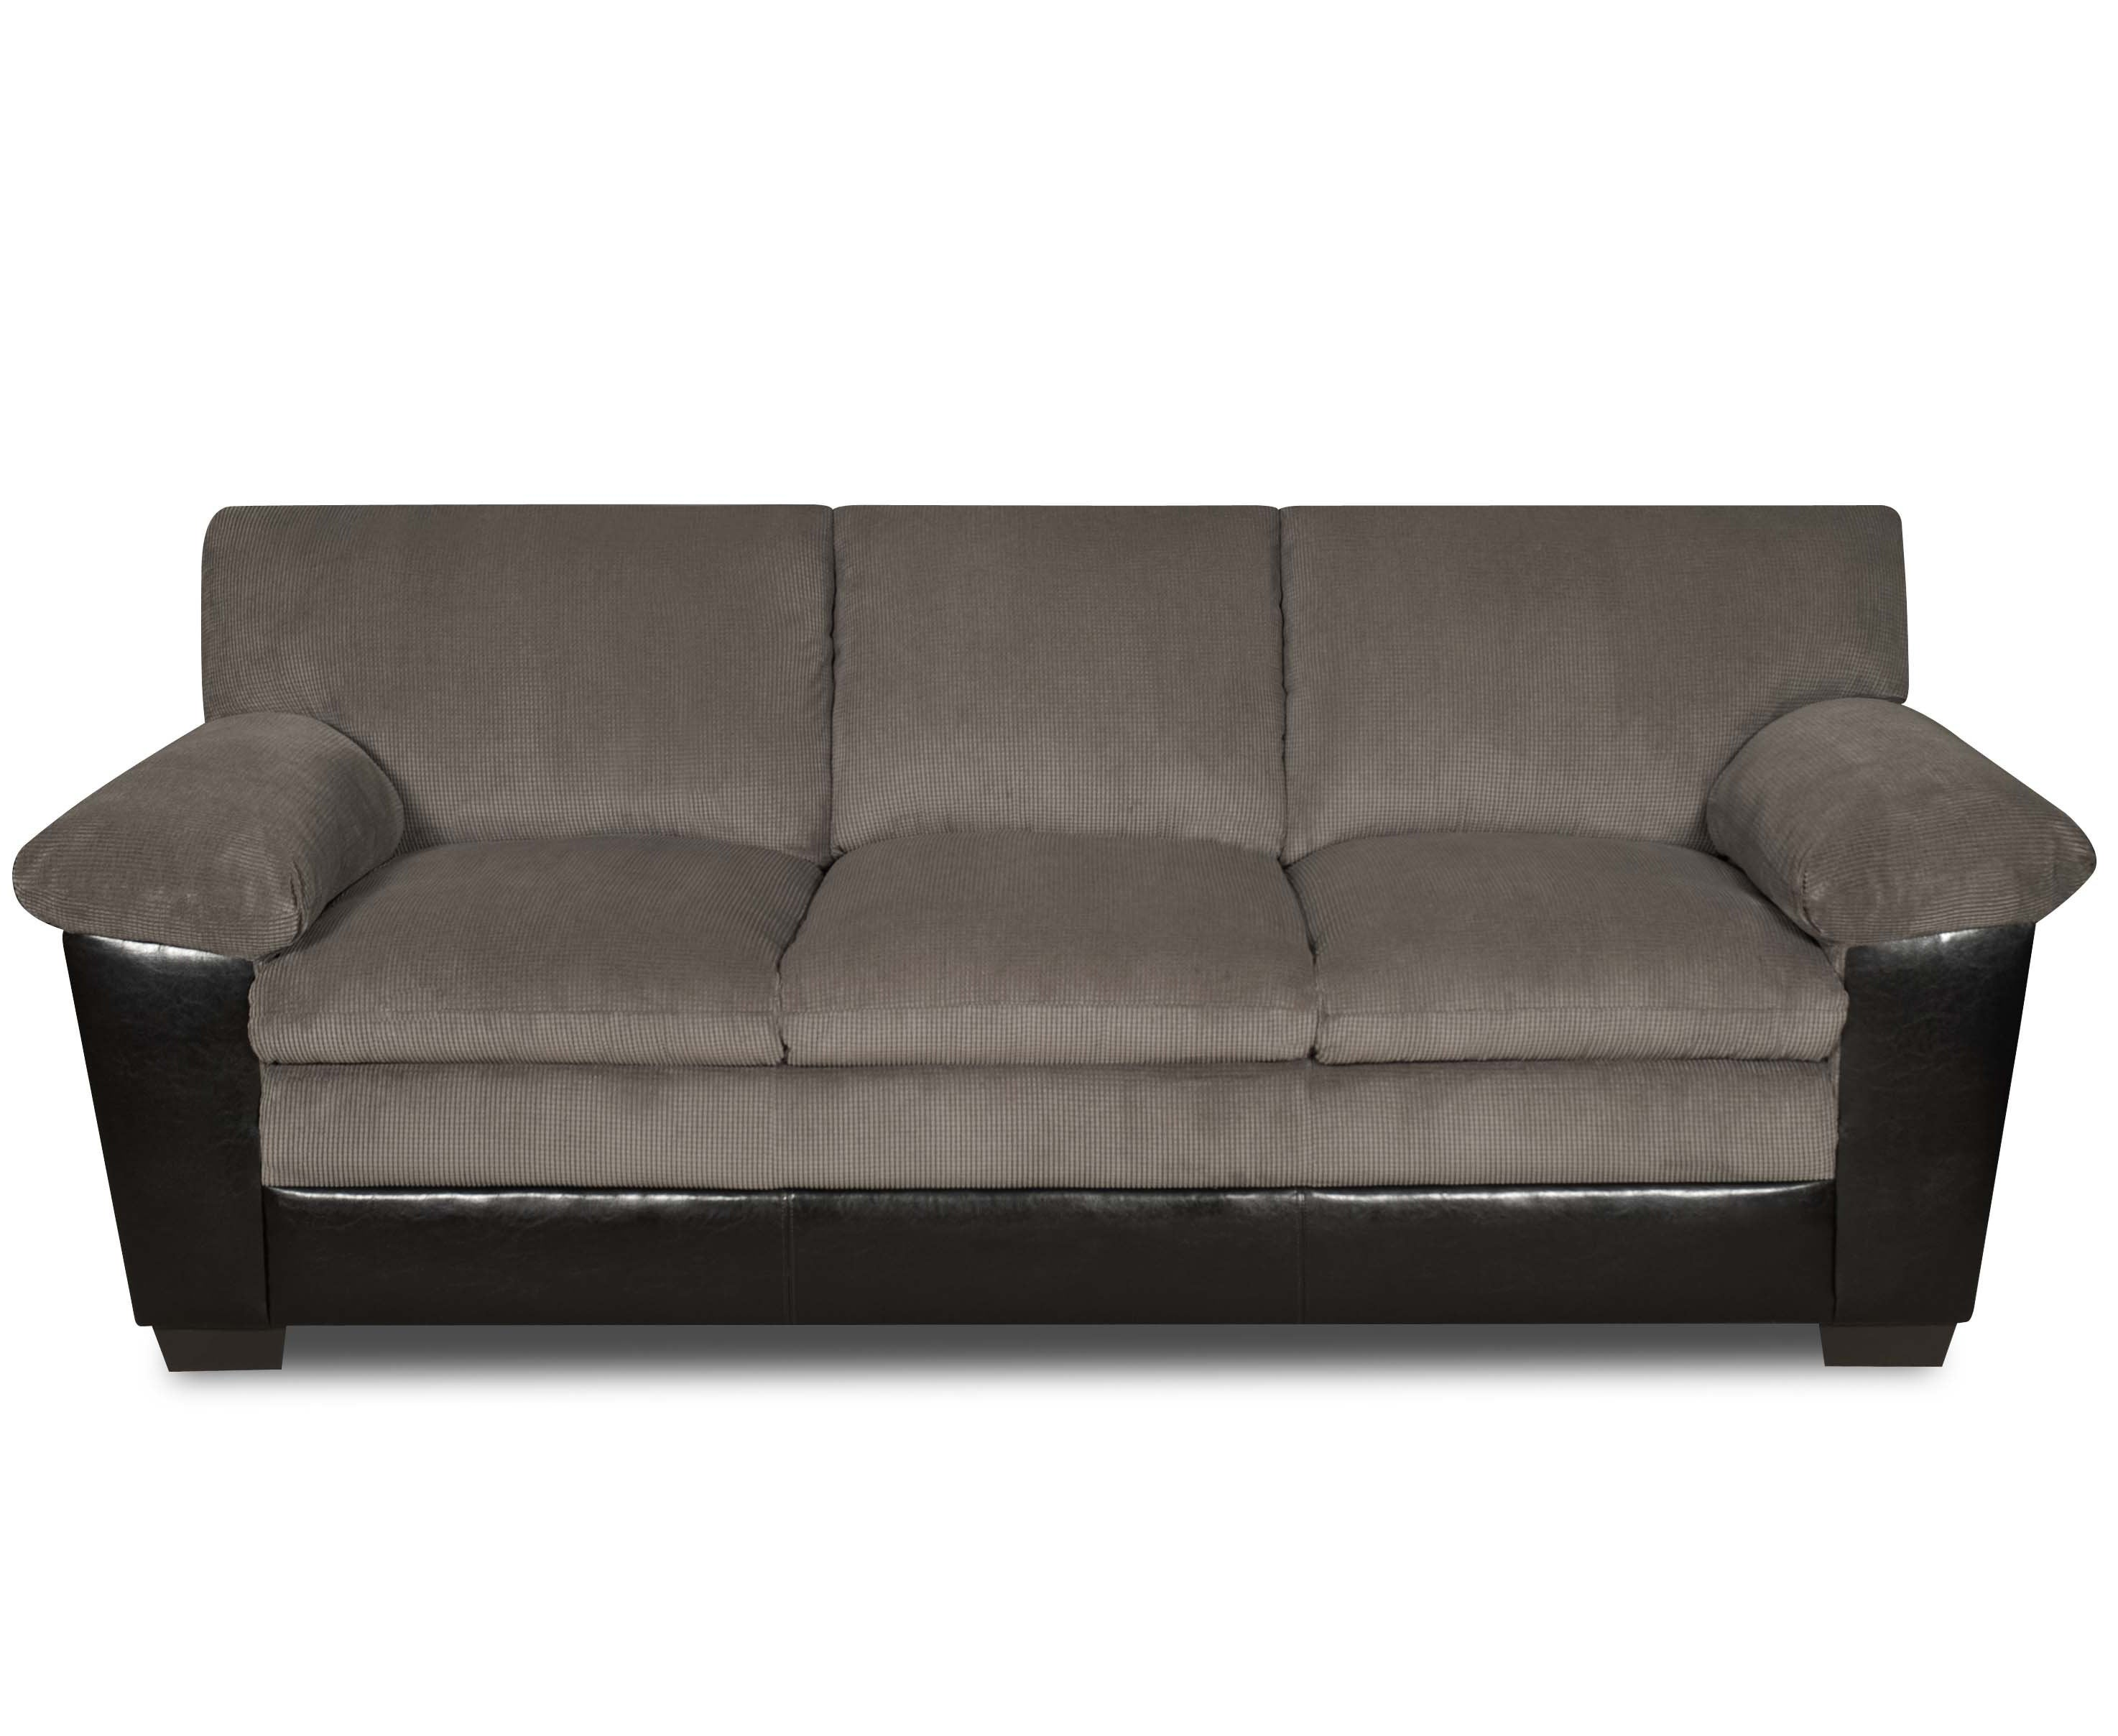 Simmons Lancaster Black and Charcoal Sofa Free Shipping Today